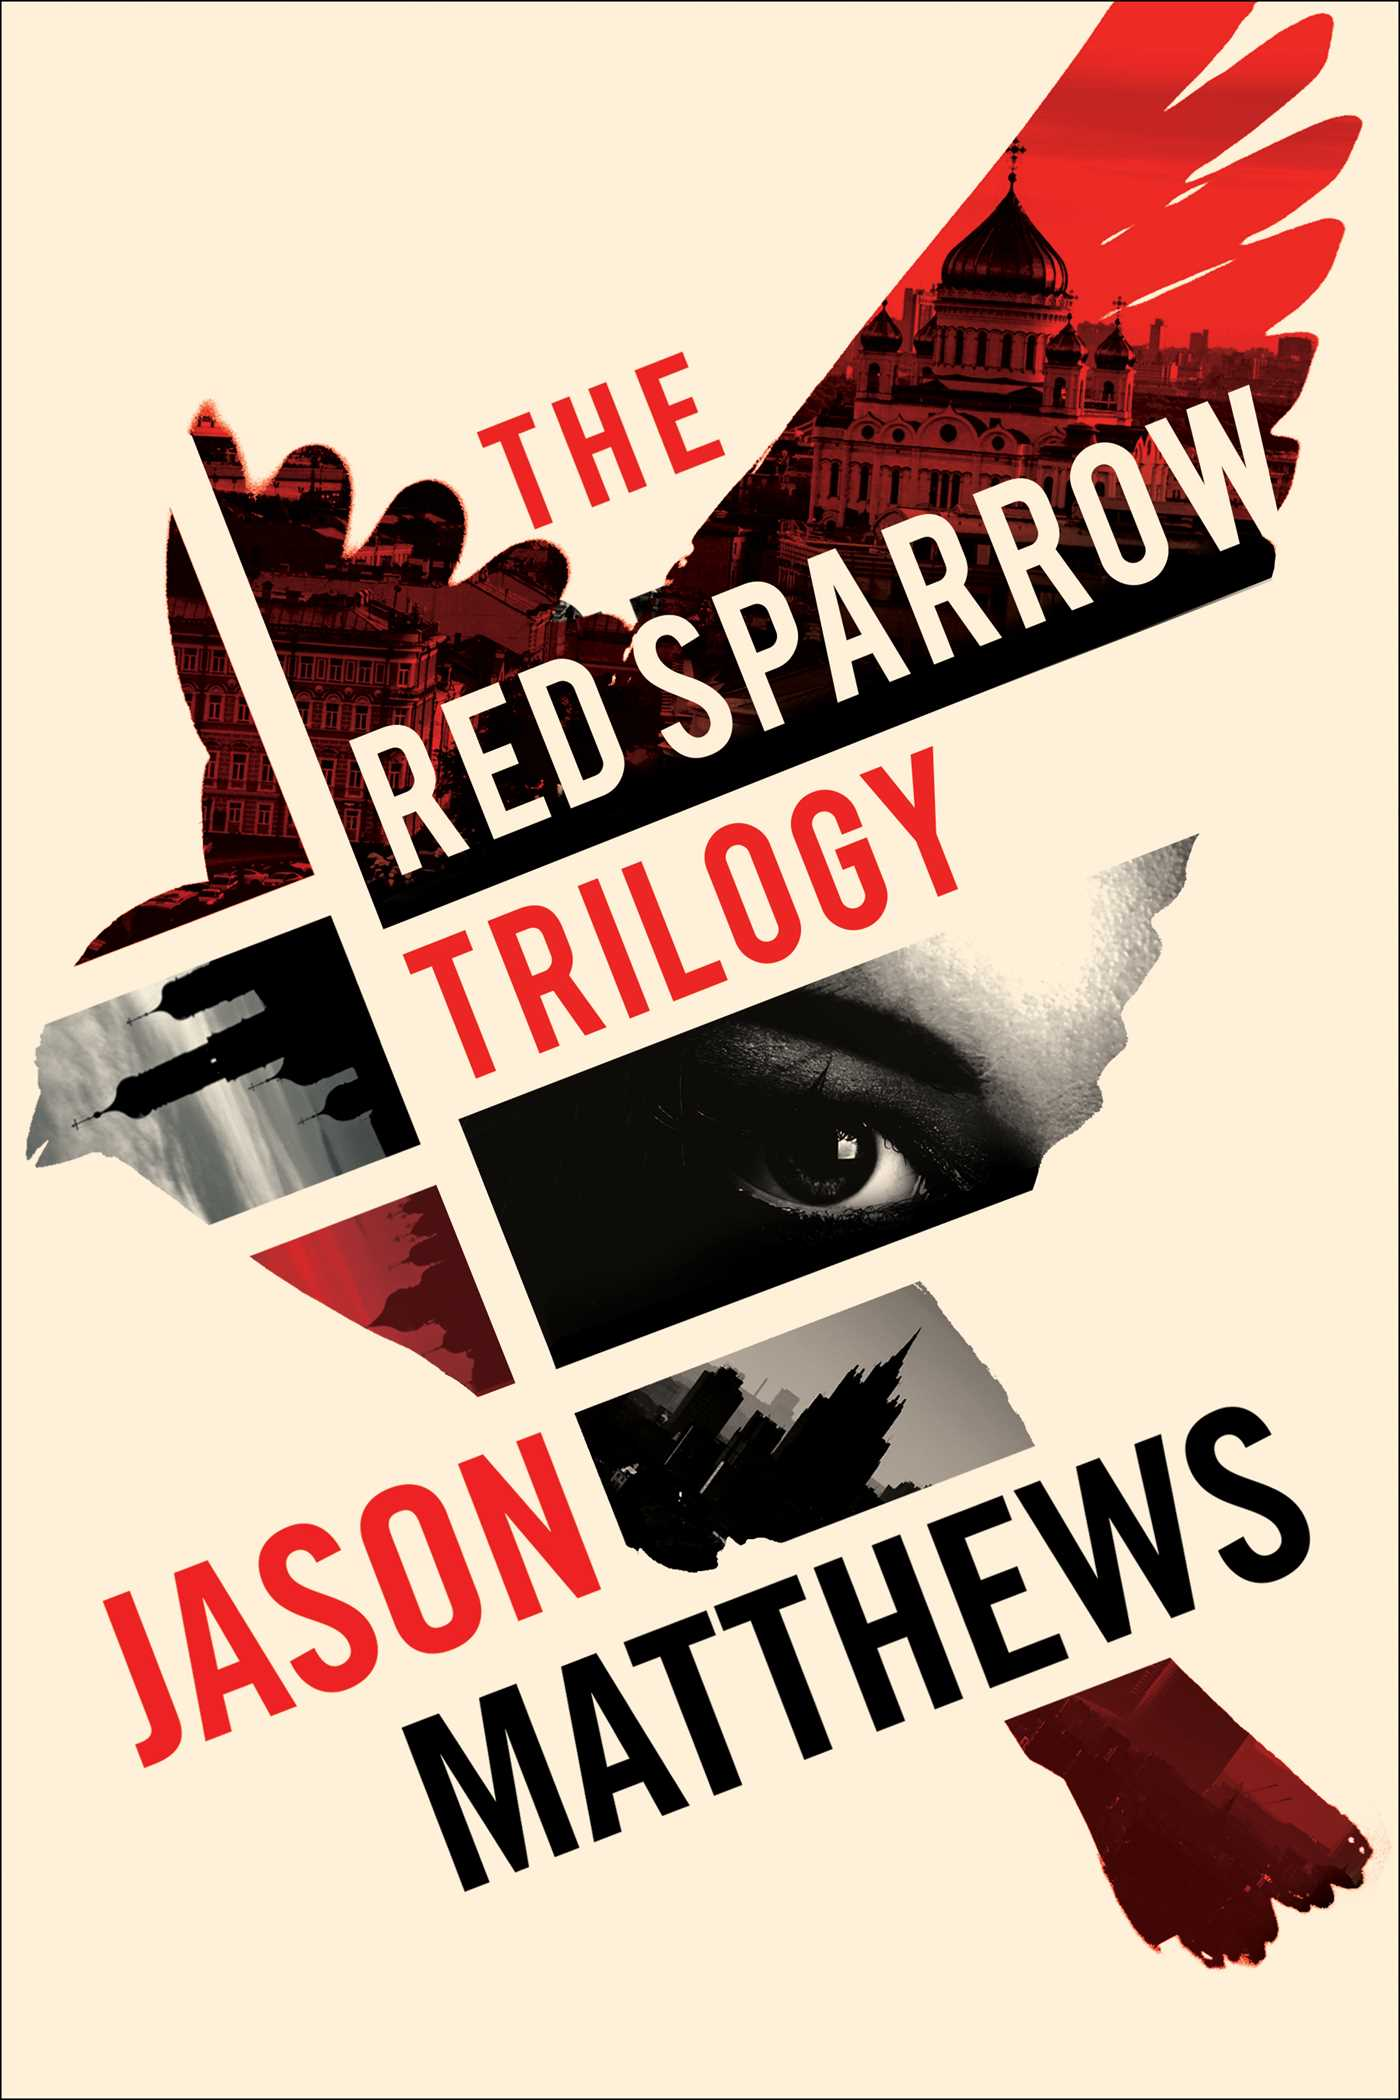 Red sparrow trilogy ebook boxed set 9781982106195 hr